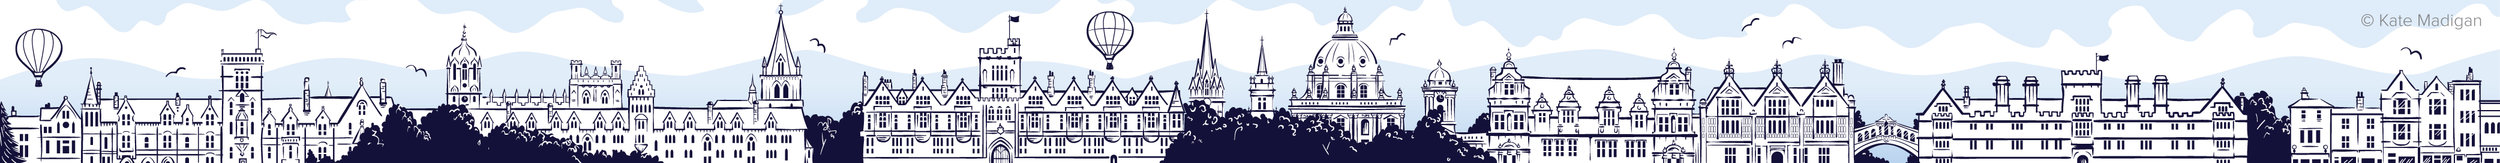 Illustrated web banner for Oxford International College depicting the Oxford city skyline. Left to right: Balliol College,Christ Church College, Brasenose College, University Church of St Mary, Lincoln College,the Radcliffe Camera, Queen's College,Trinity College,the Ruskin School of Art, the Bridge of Sighs (Hertford College), Wadham College, shops on Broad Street.  Copyright Kate Madigan.